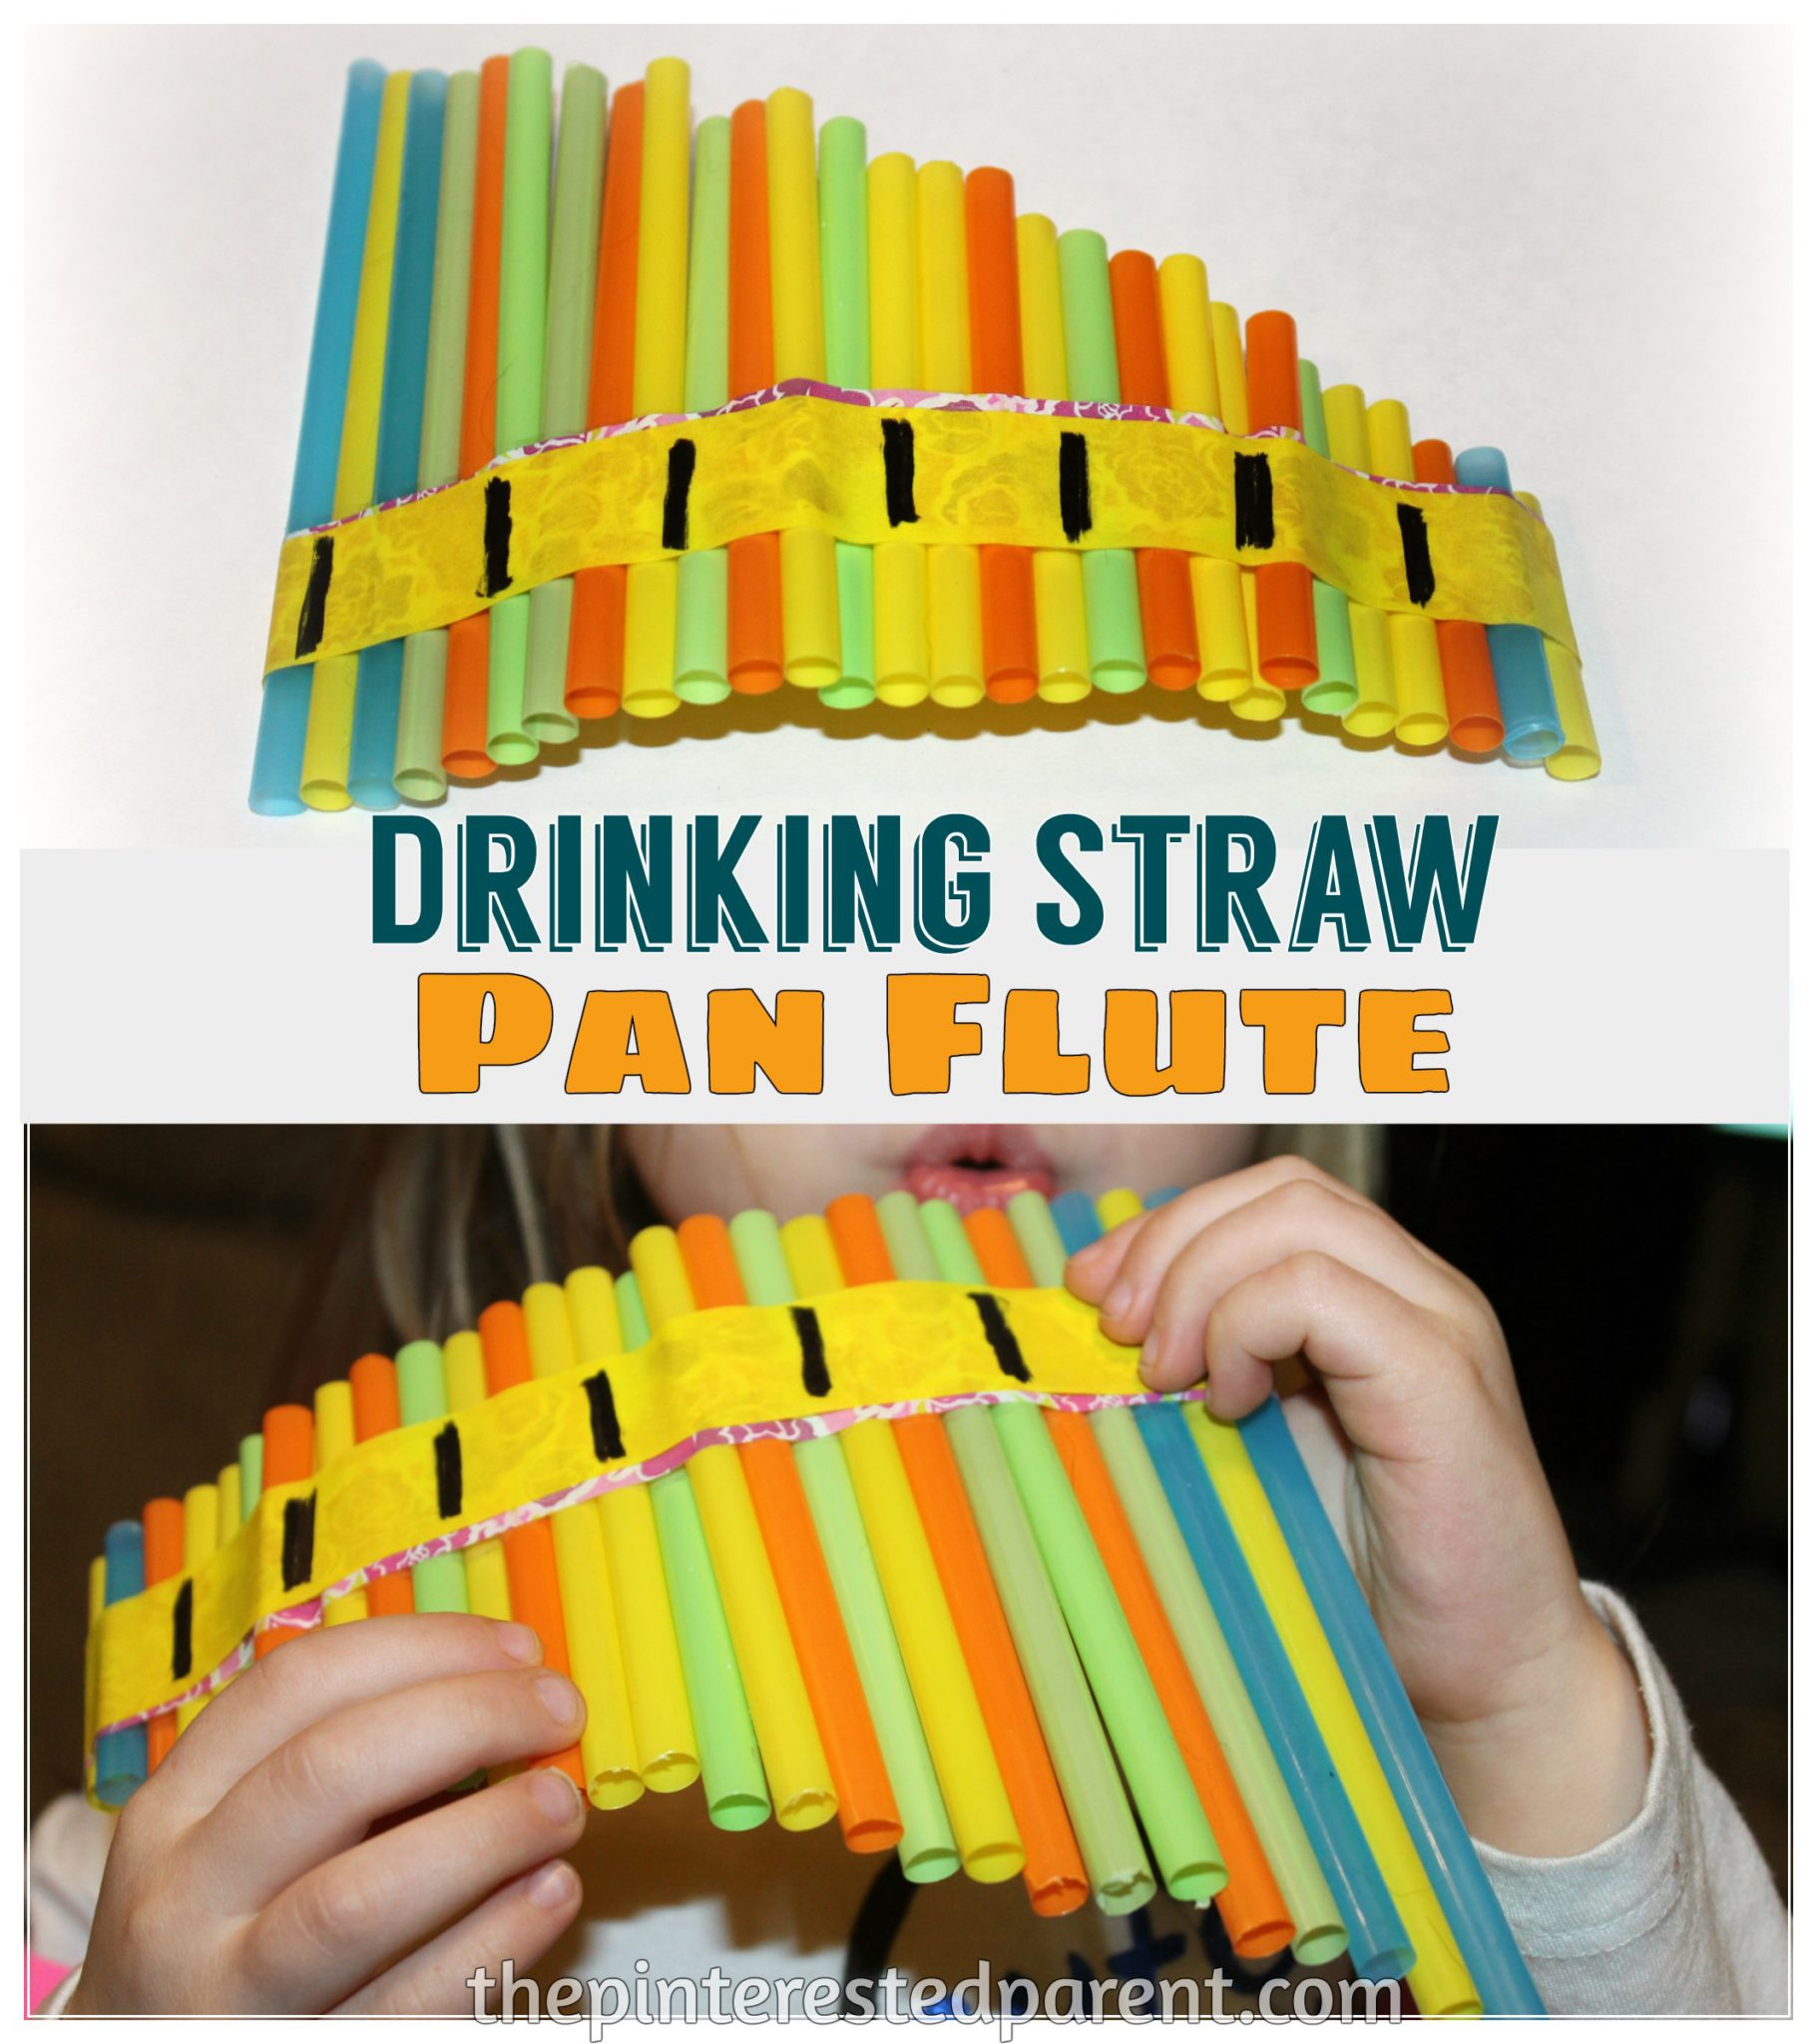 Straw pan flute craft the pinterested parent - What can you make with straws ...